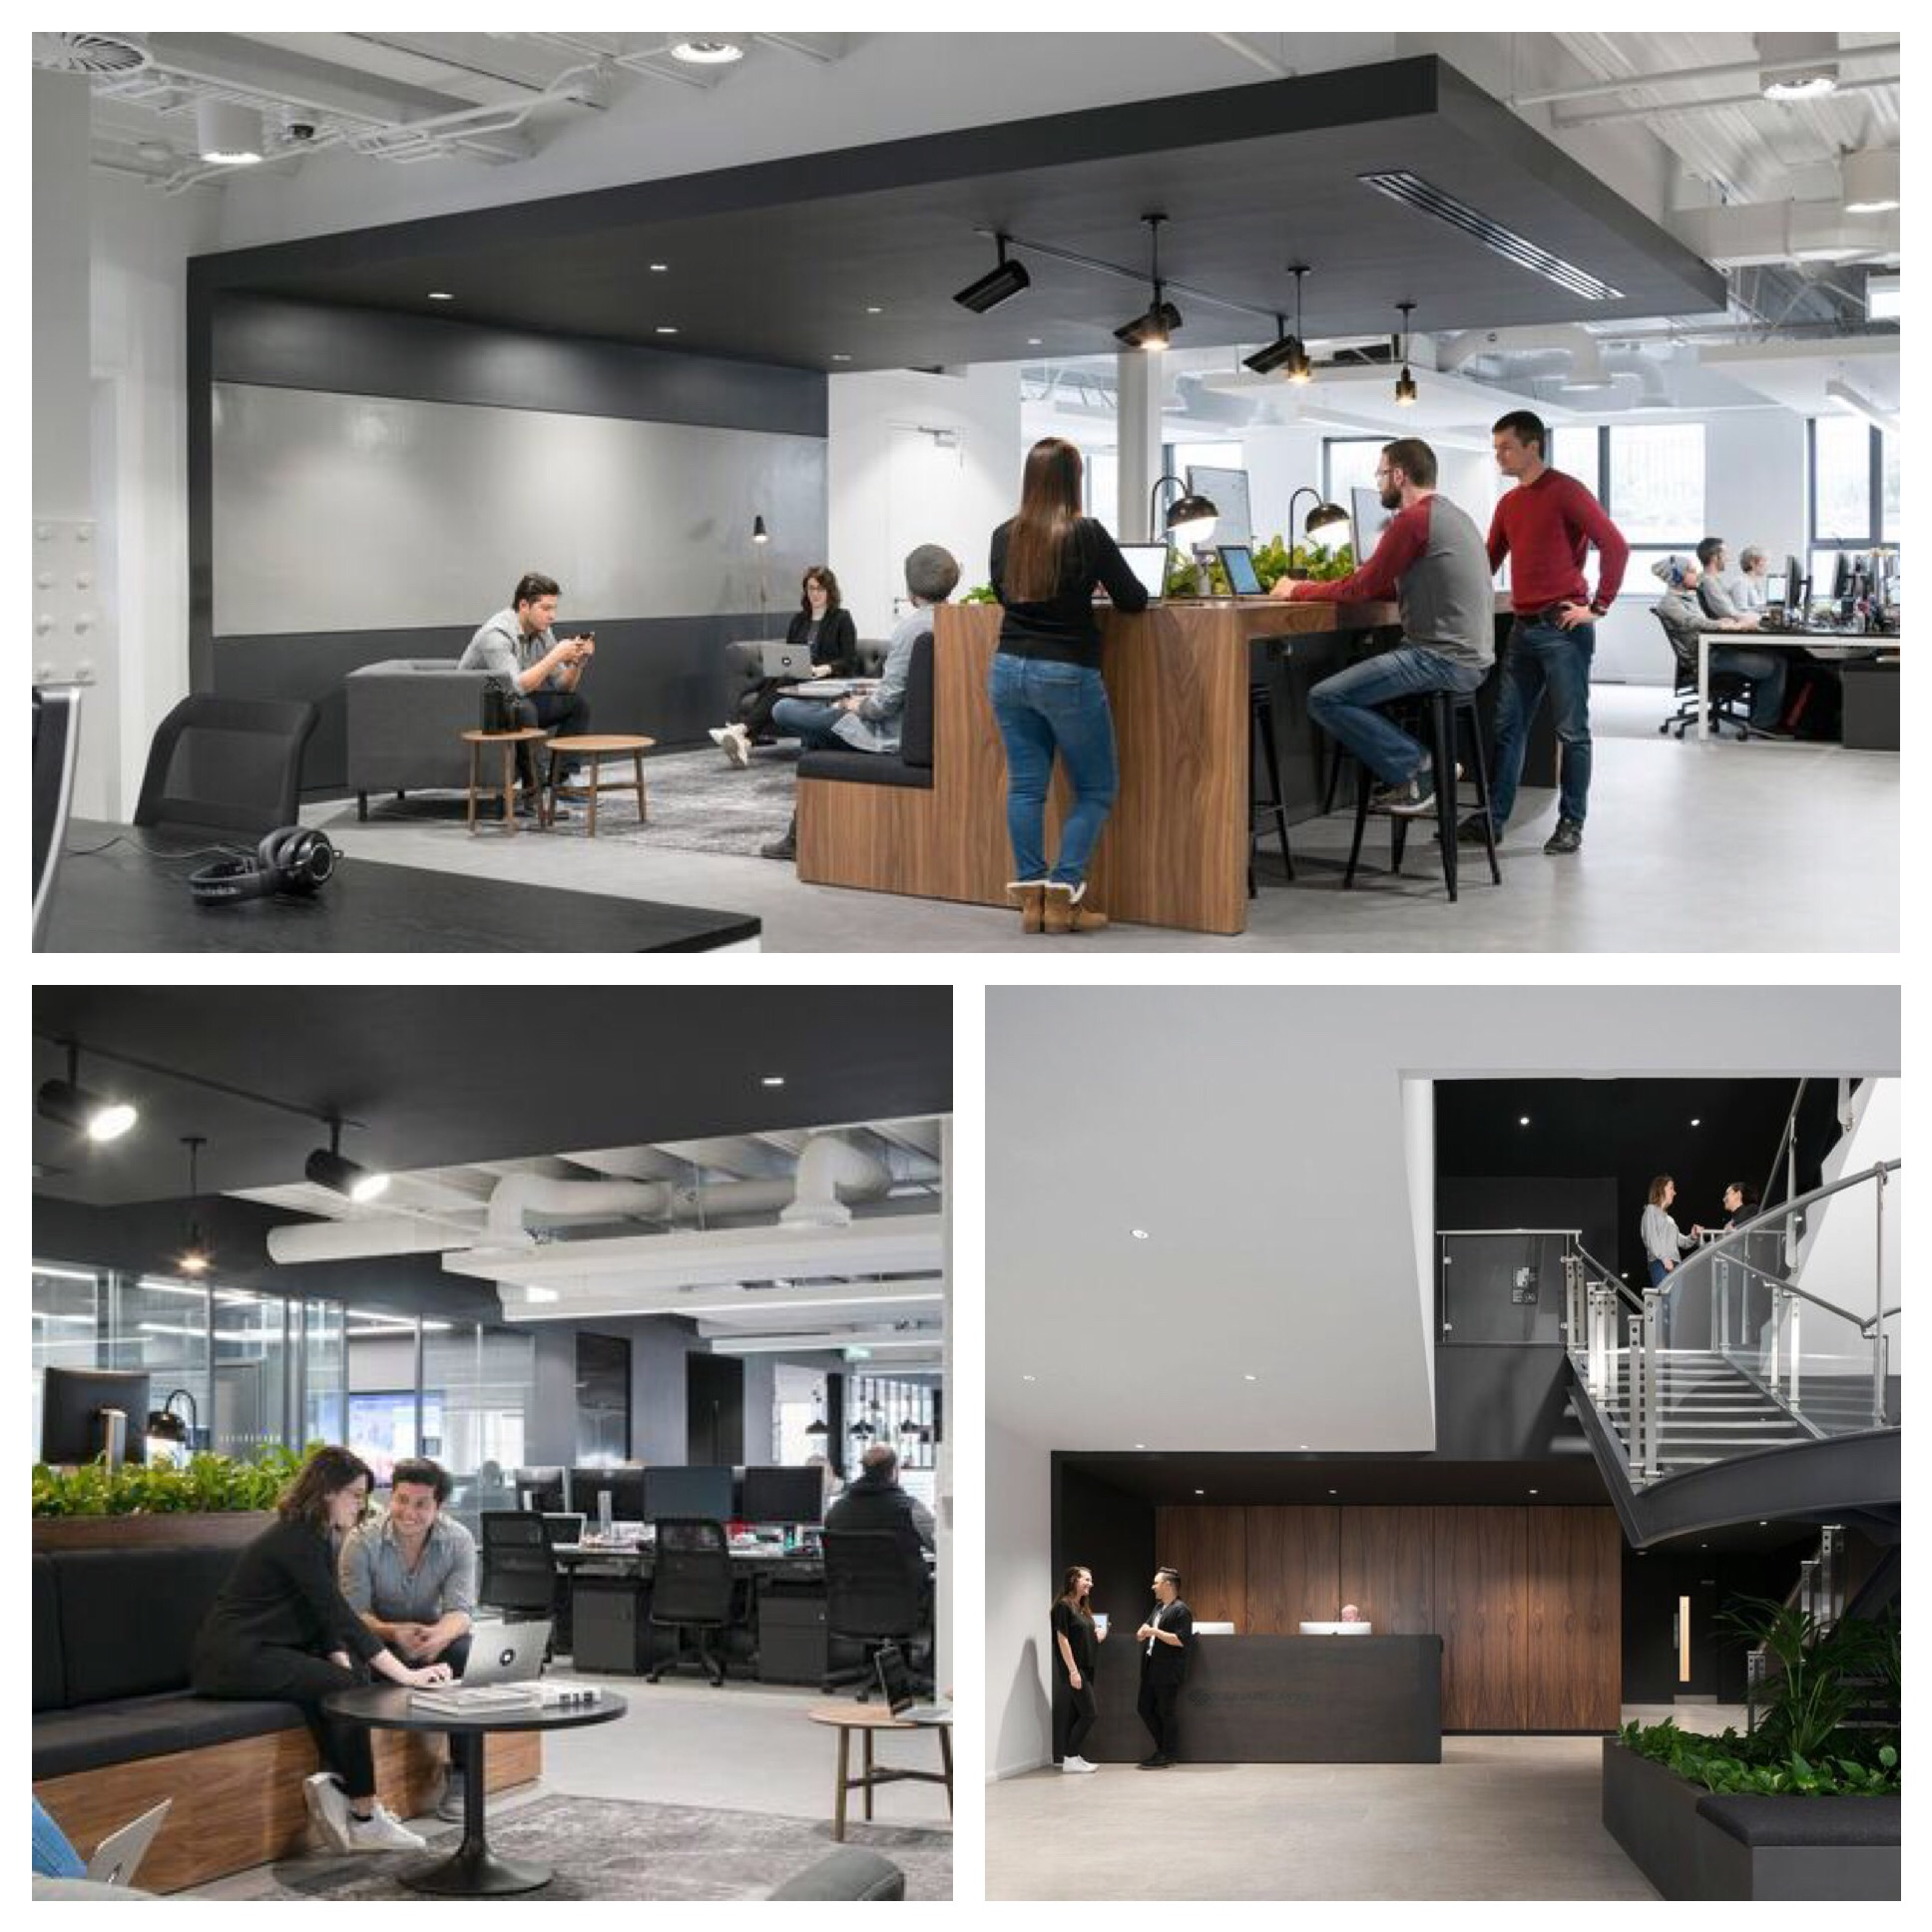 A look inside squarespace 39 s dublin offices walls construction limited - Squarespace dublin office ...